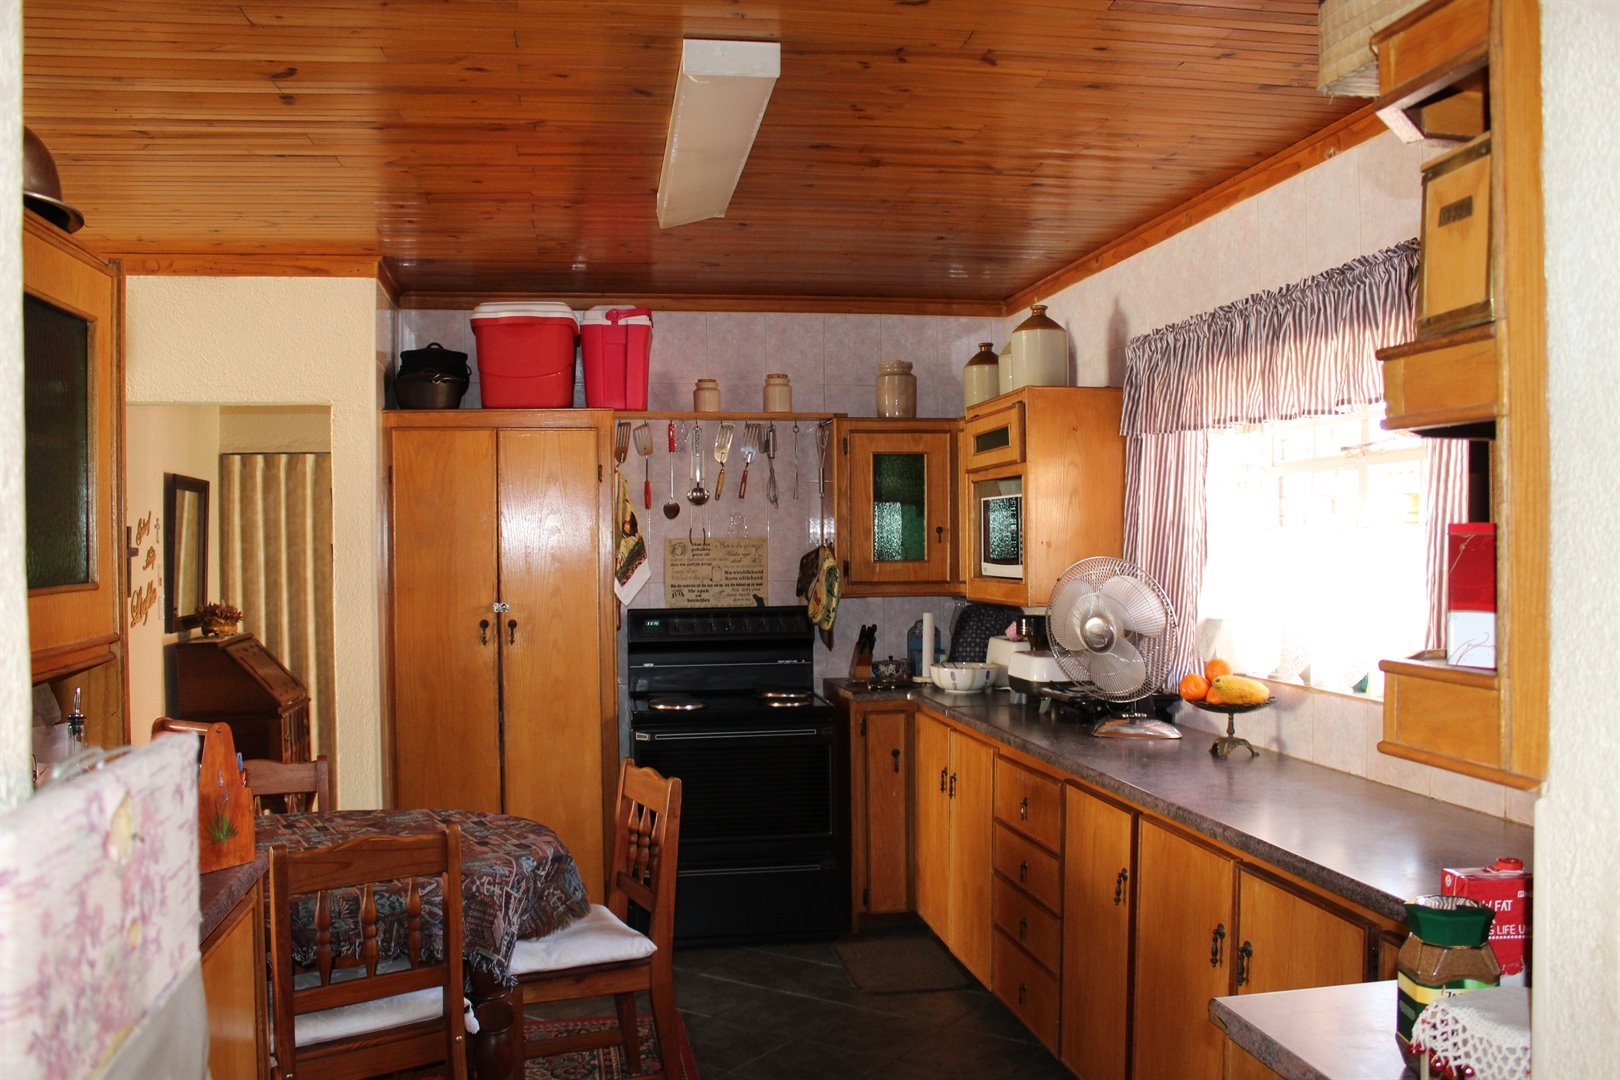 Suid Dorp property for sale. Ref No: 13508208. Picture no 6